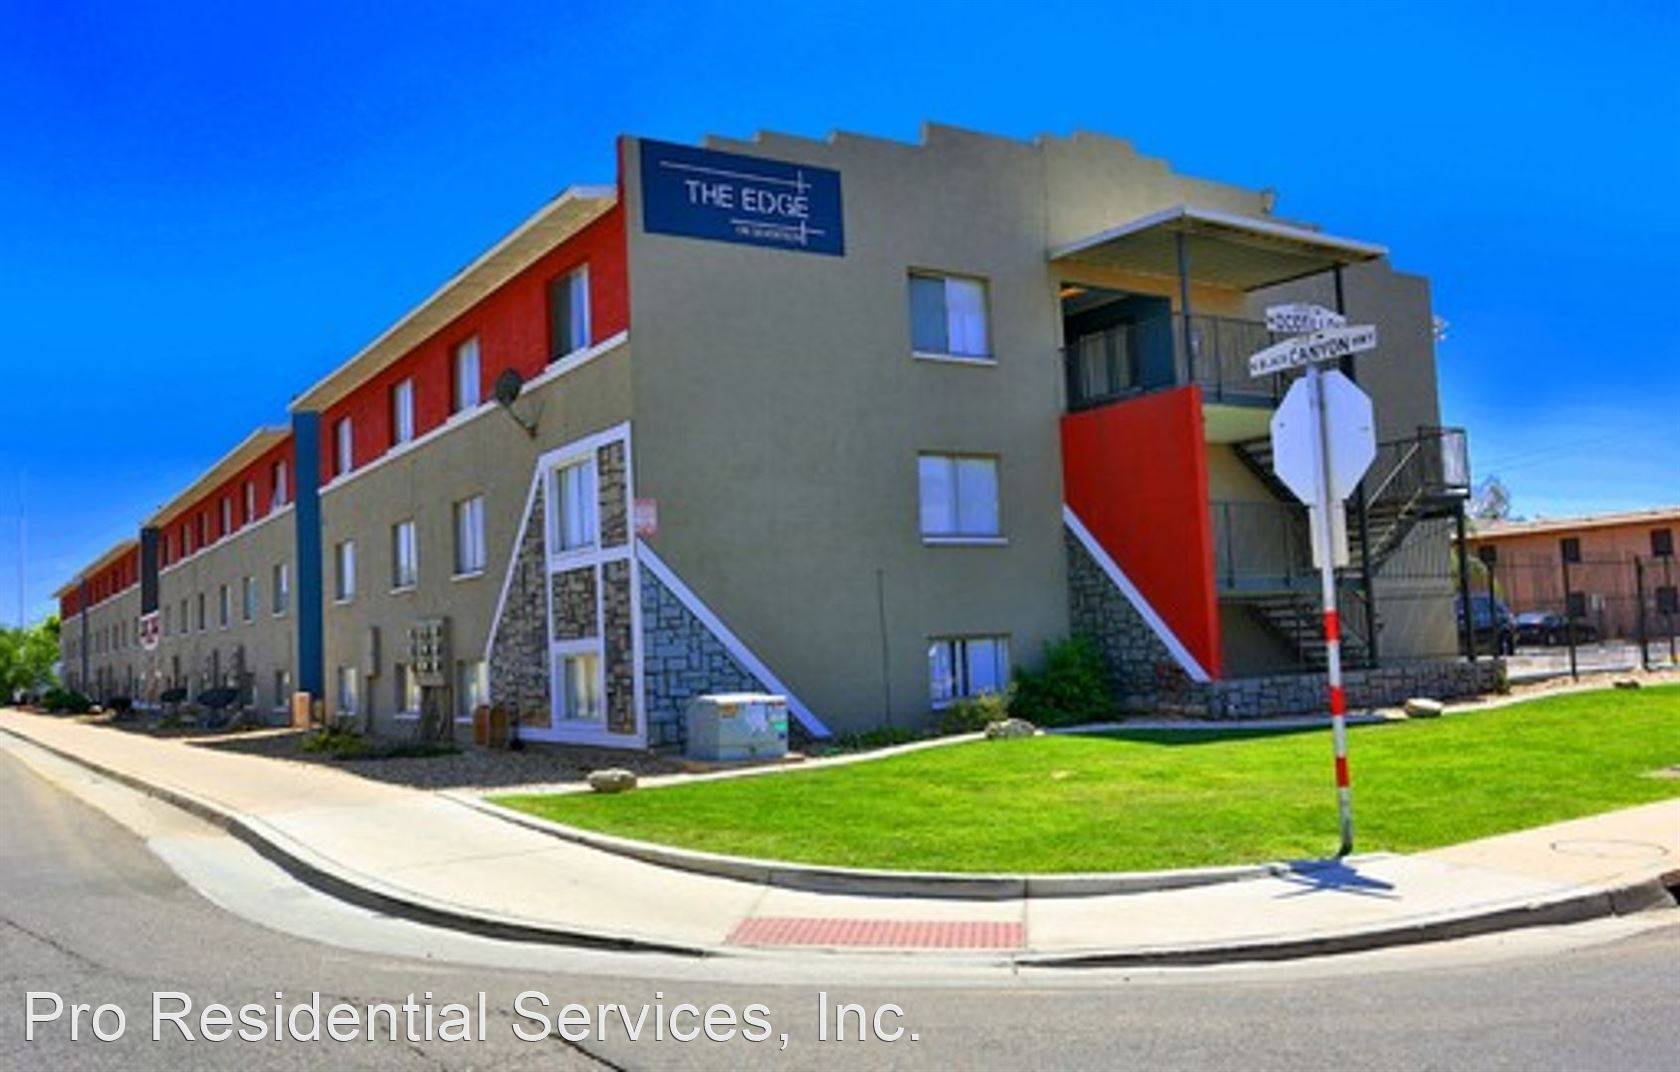 2501 W. Ocotillo Rd. Attn: Leasing Office